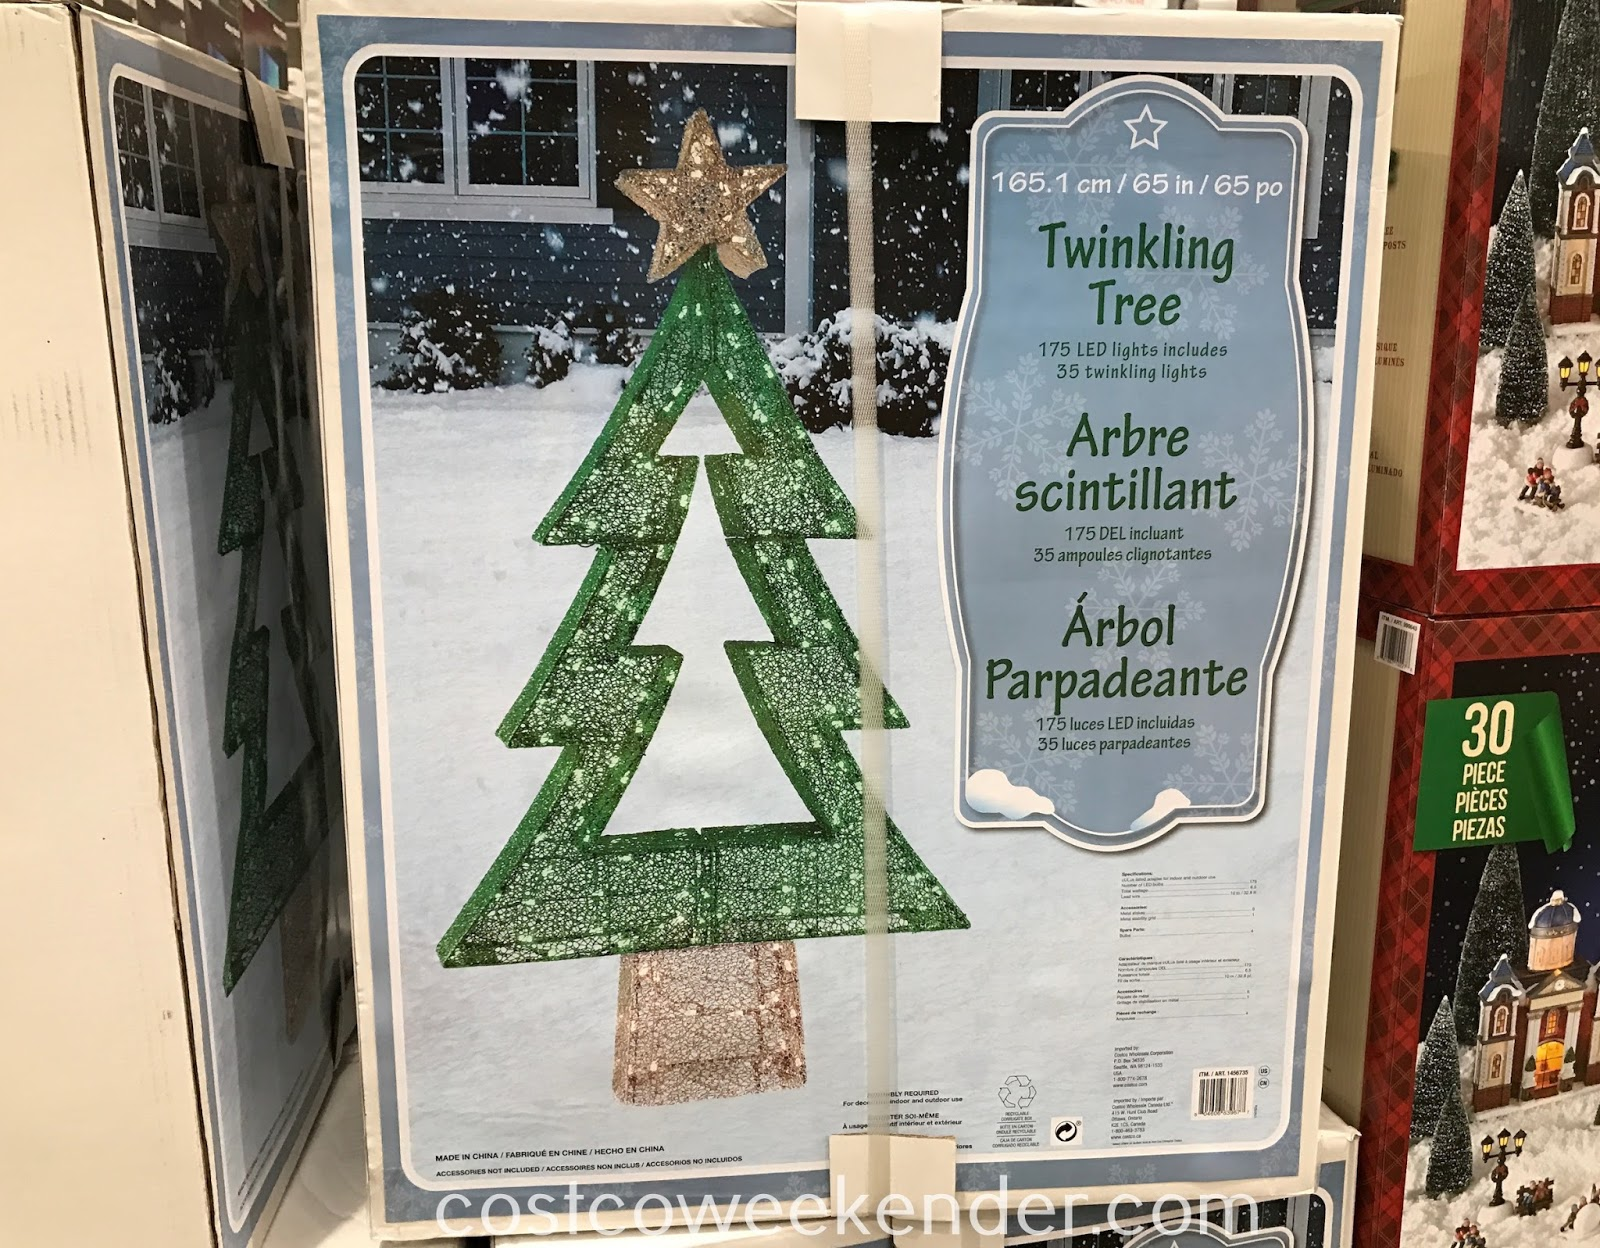 Decorate your home for the holidays with a Twinkling Tree